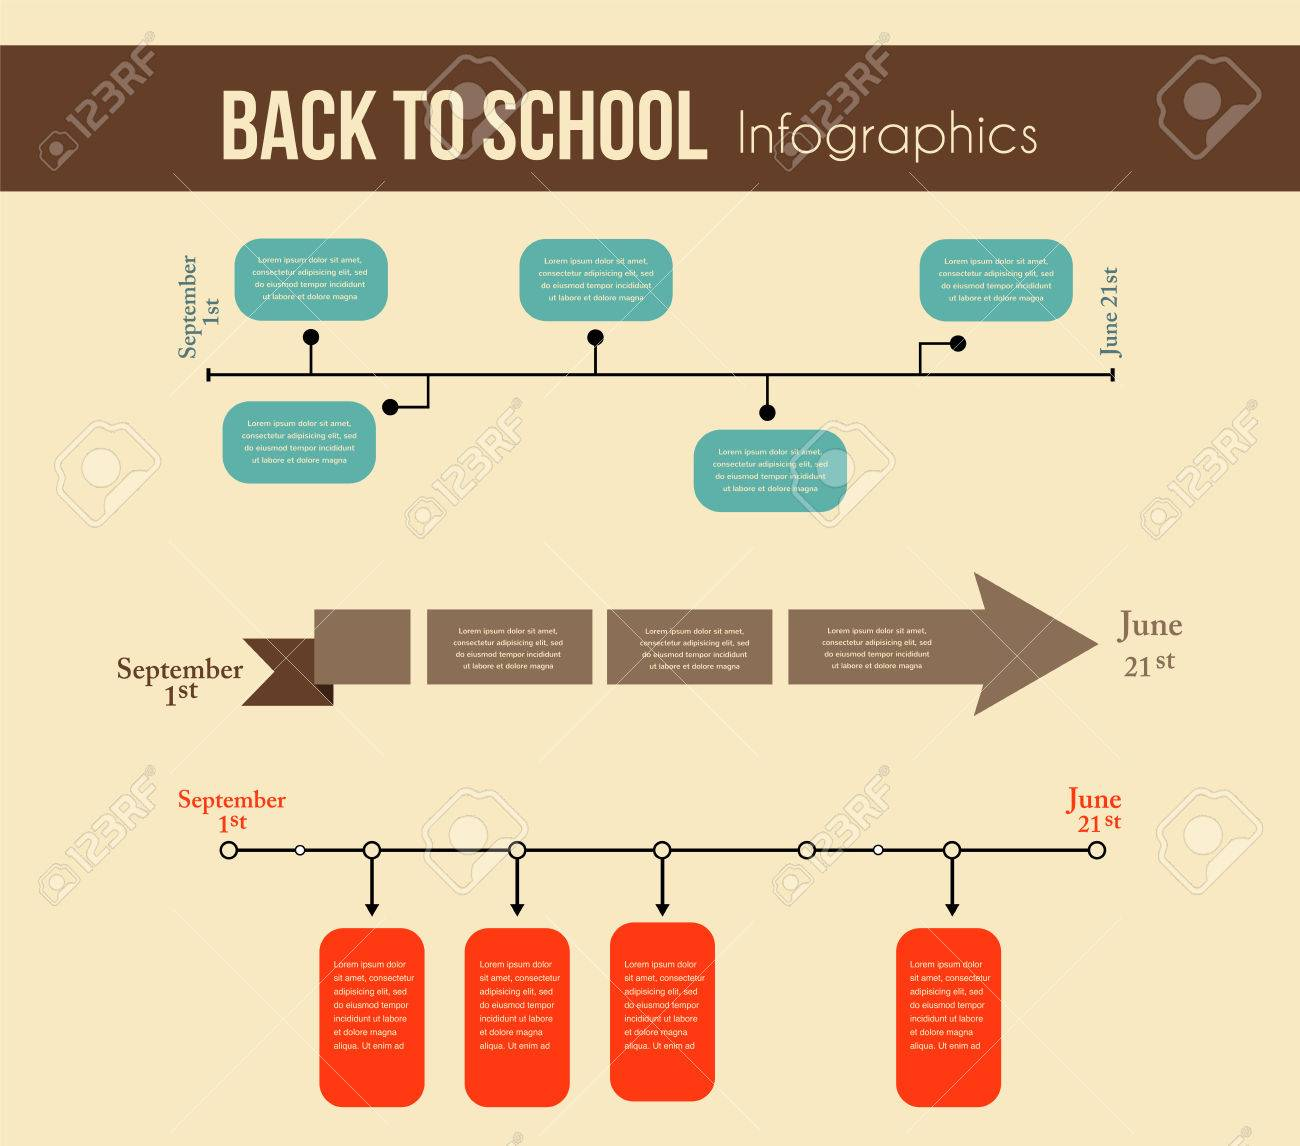 chronological stock illustrations cliparts and royalty chronological back to school infographics education year timeline